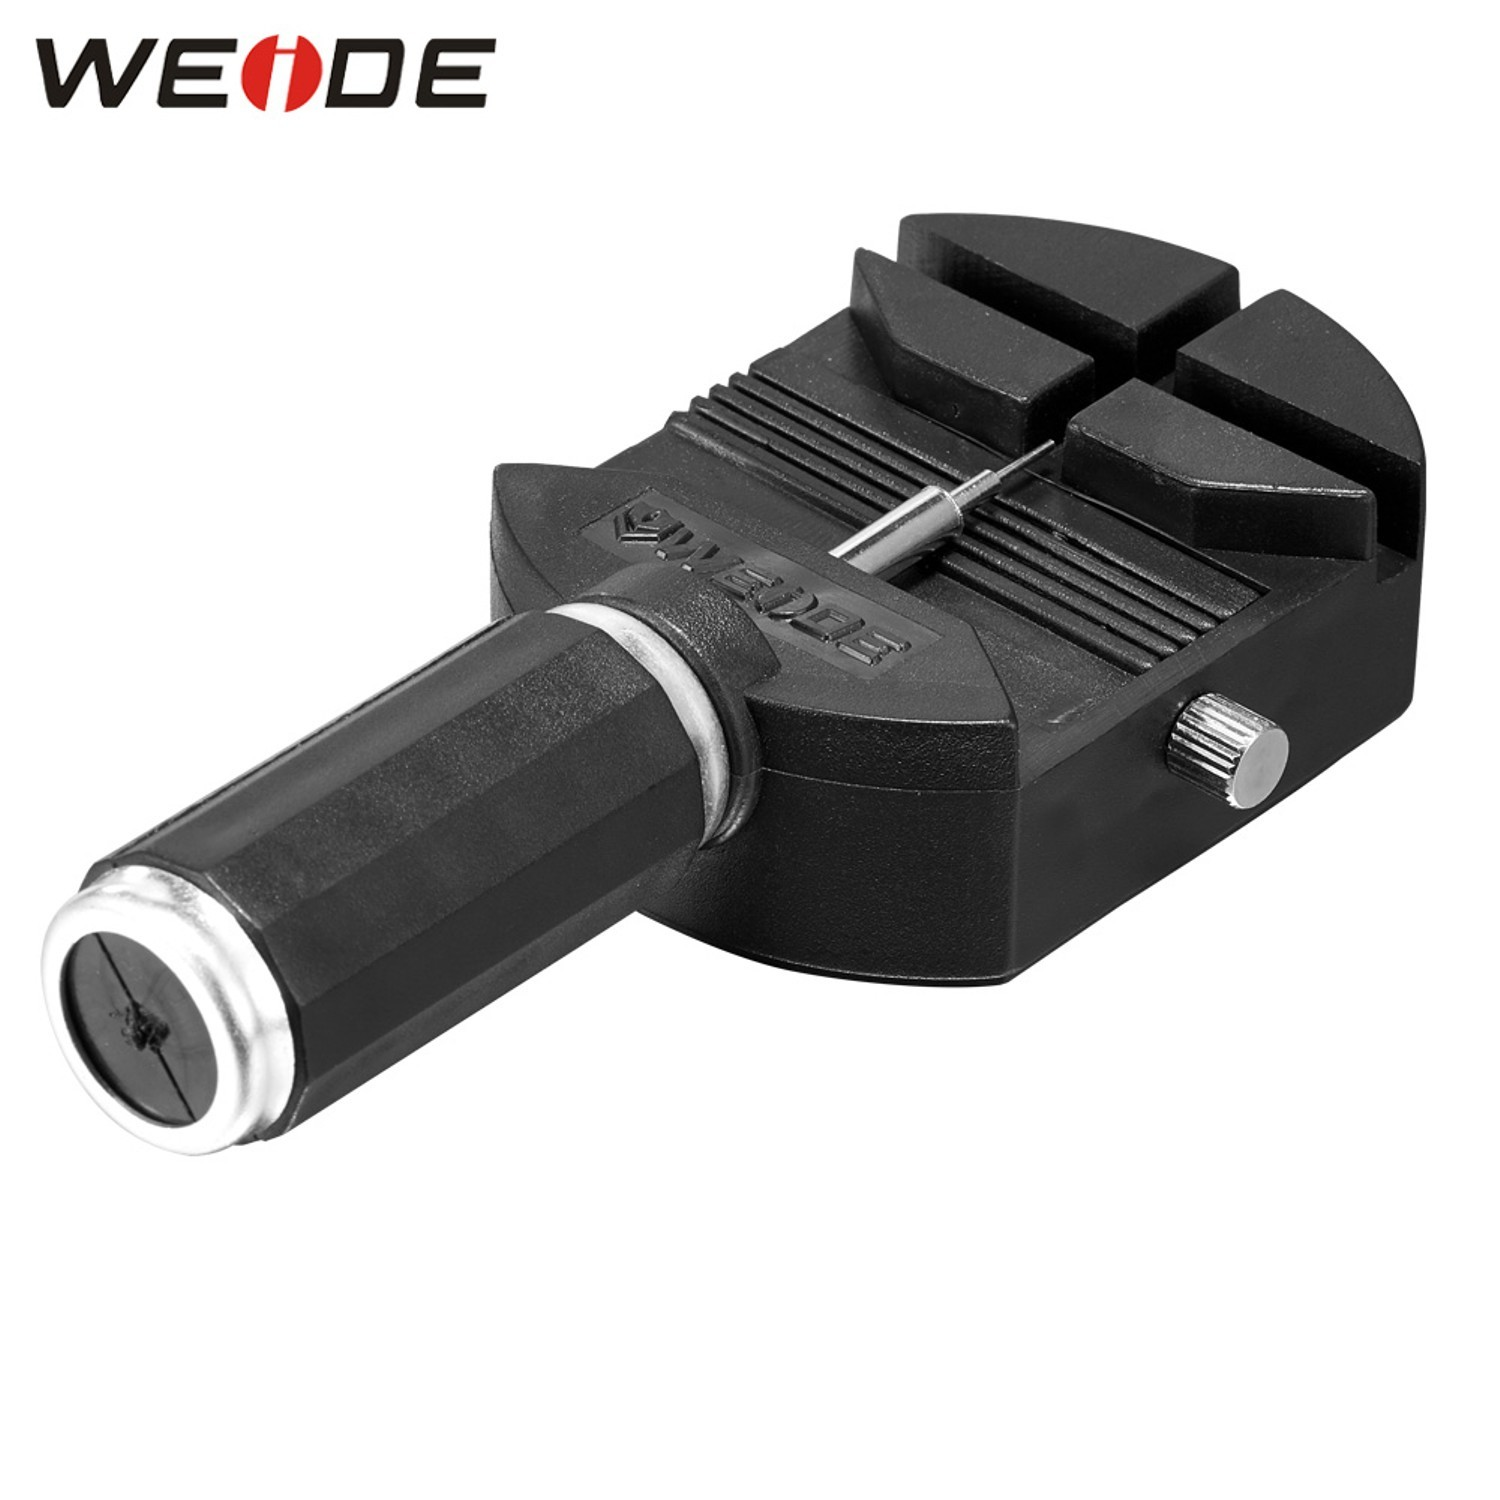 Original-Brand-WEIDE-Watch-Repair-Tools-Black-Plastic-Quality-Design-Adjusting-the-Watchband-Easily-Useful-Hot_1500x1500_STRETCH_79.jpg